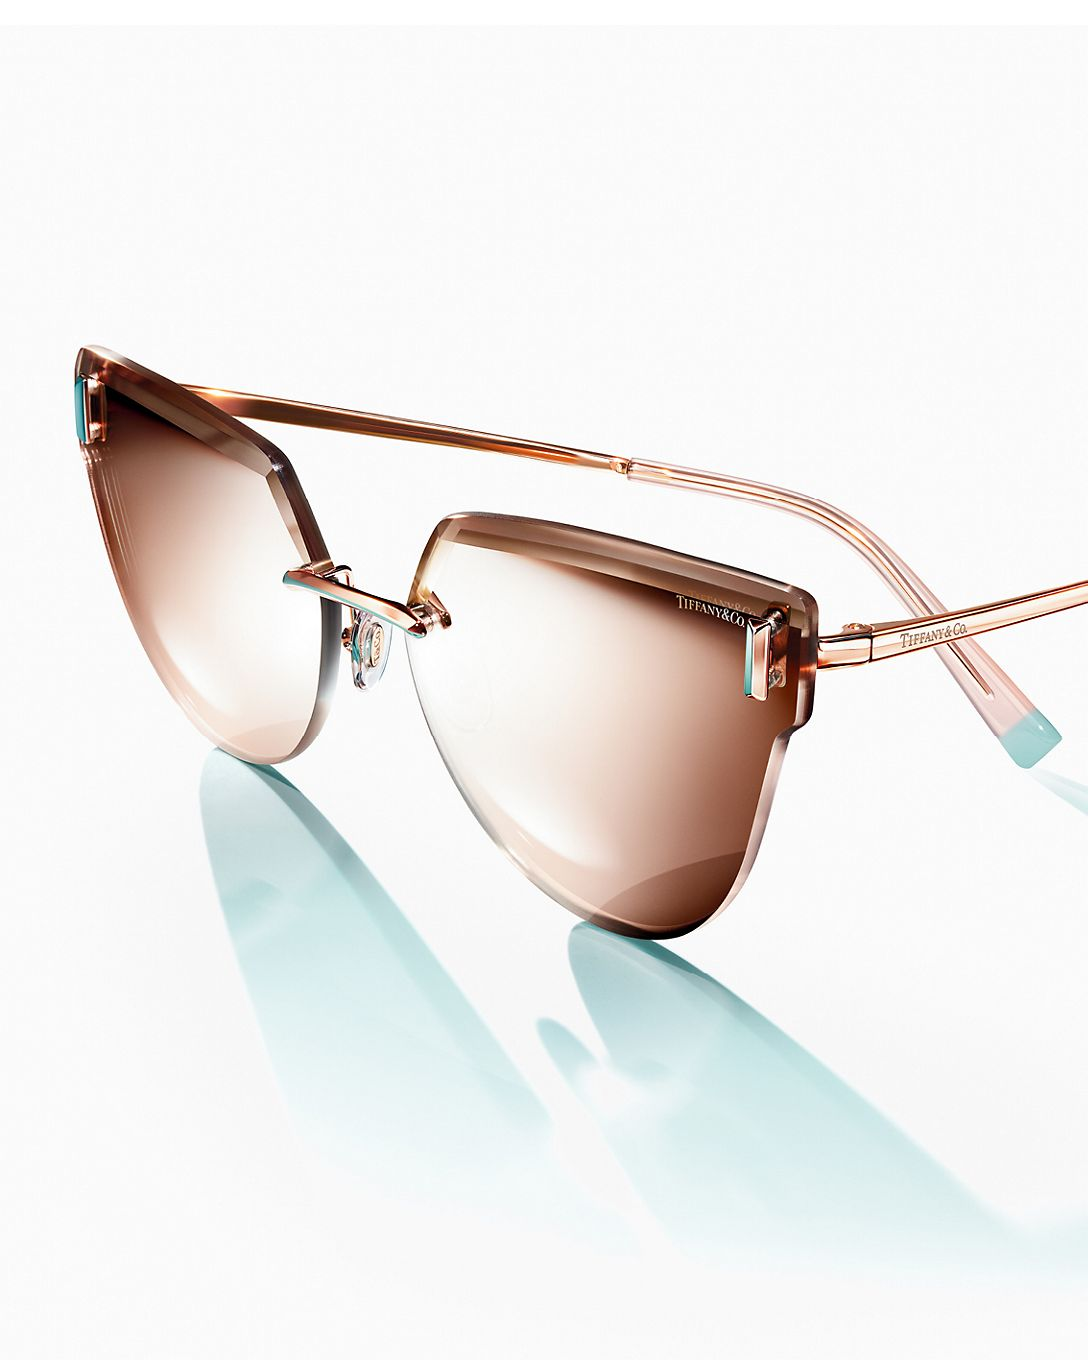 Shop Tiffany & Co. Sunglasses